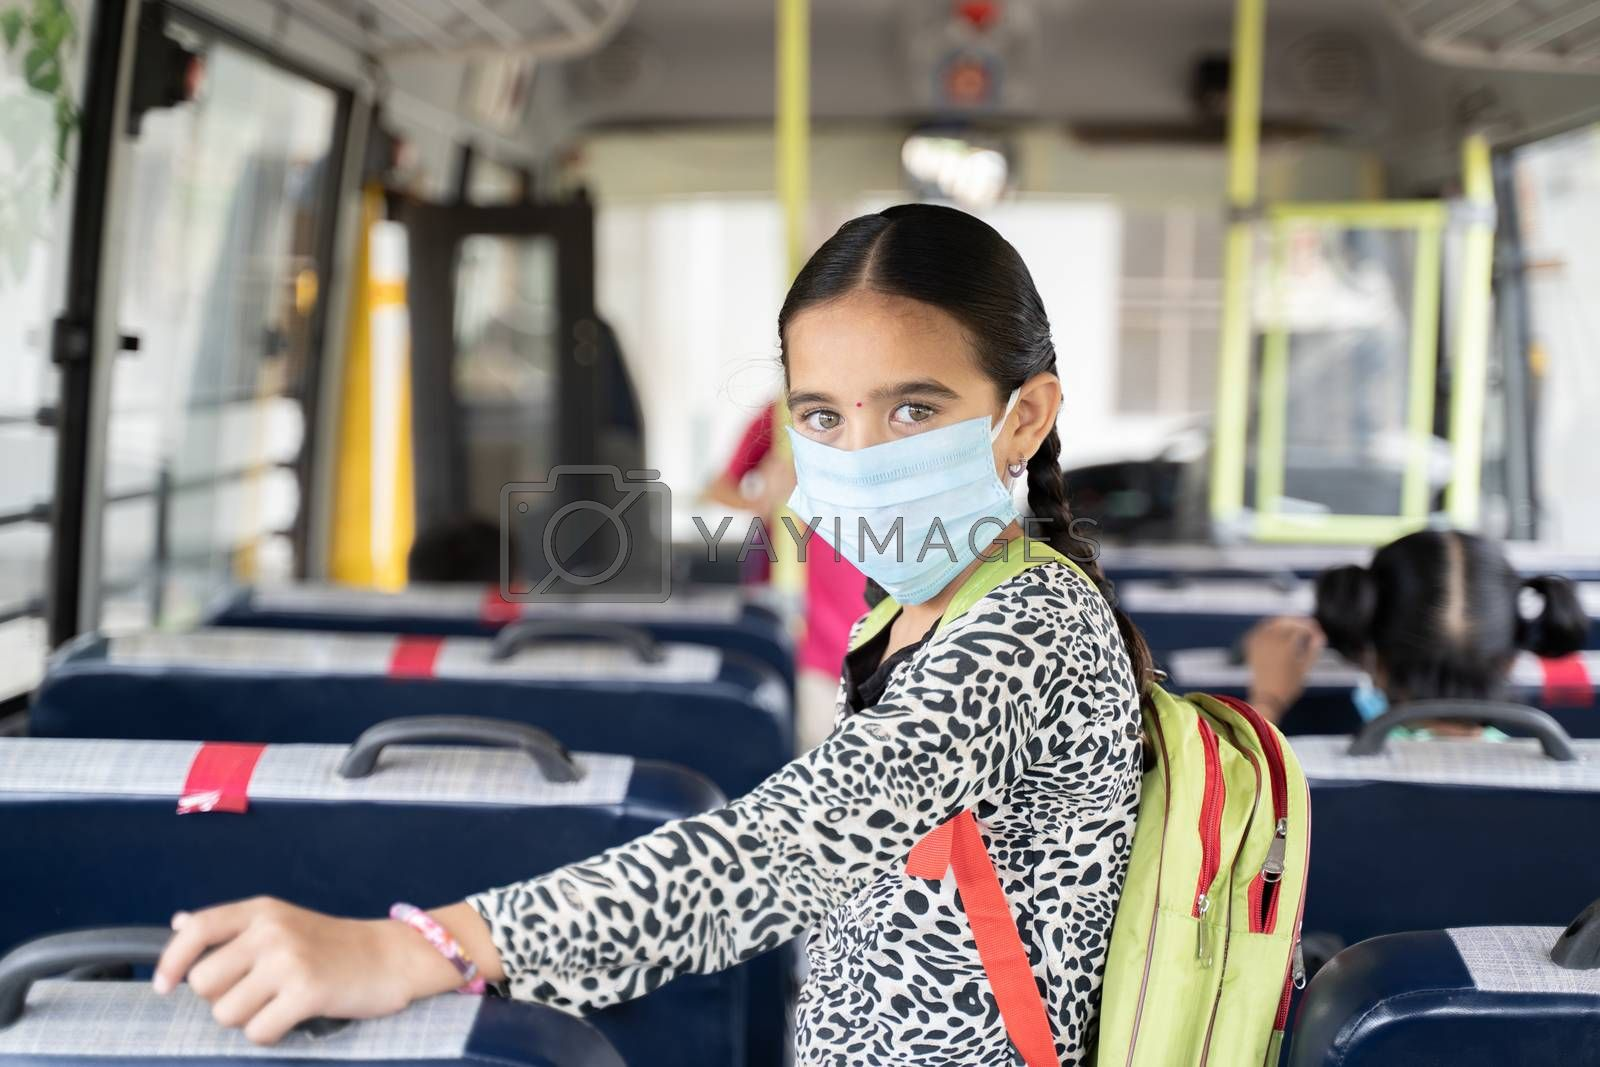 Portrait of Girl kid student in medical mask inside the school bus looking at camera - Concept of school reopen or back to school with new normal lifestyle by lakshmiprasad.maski@gmai.com